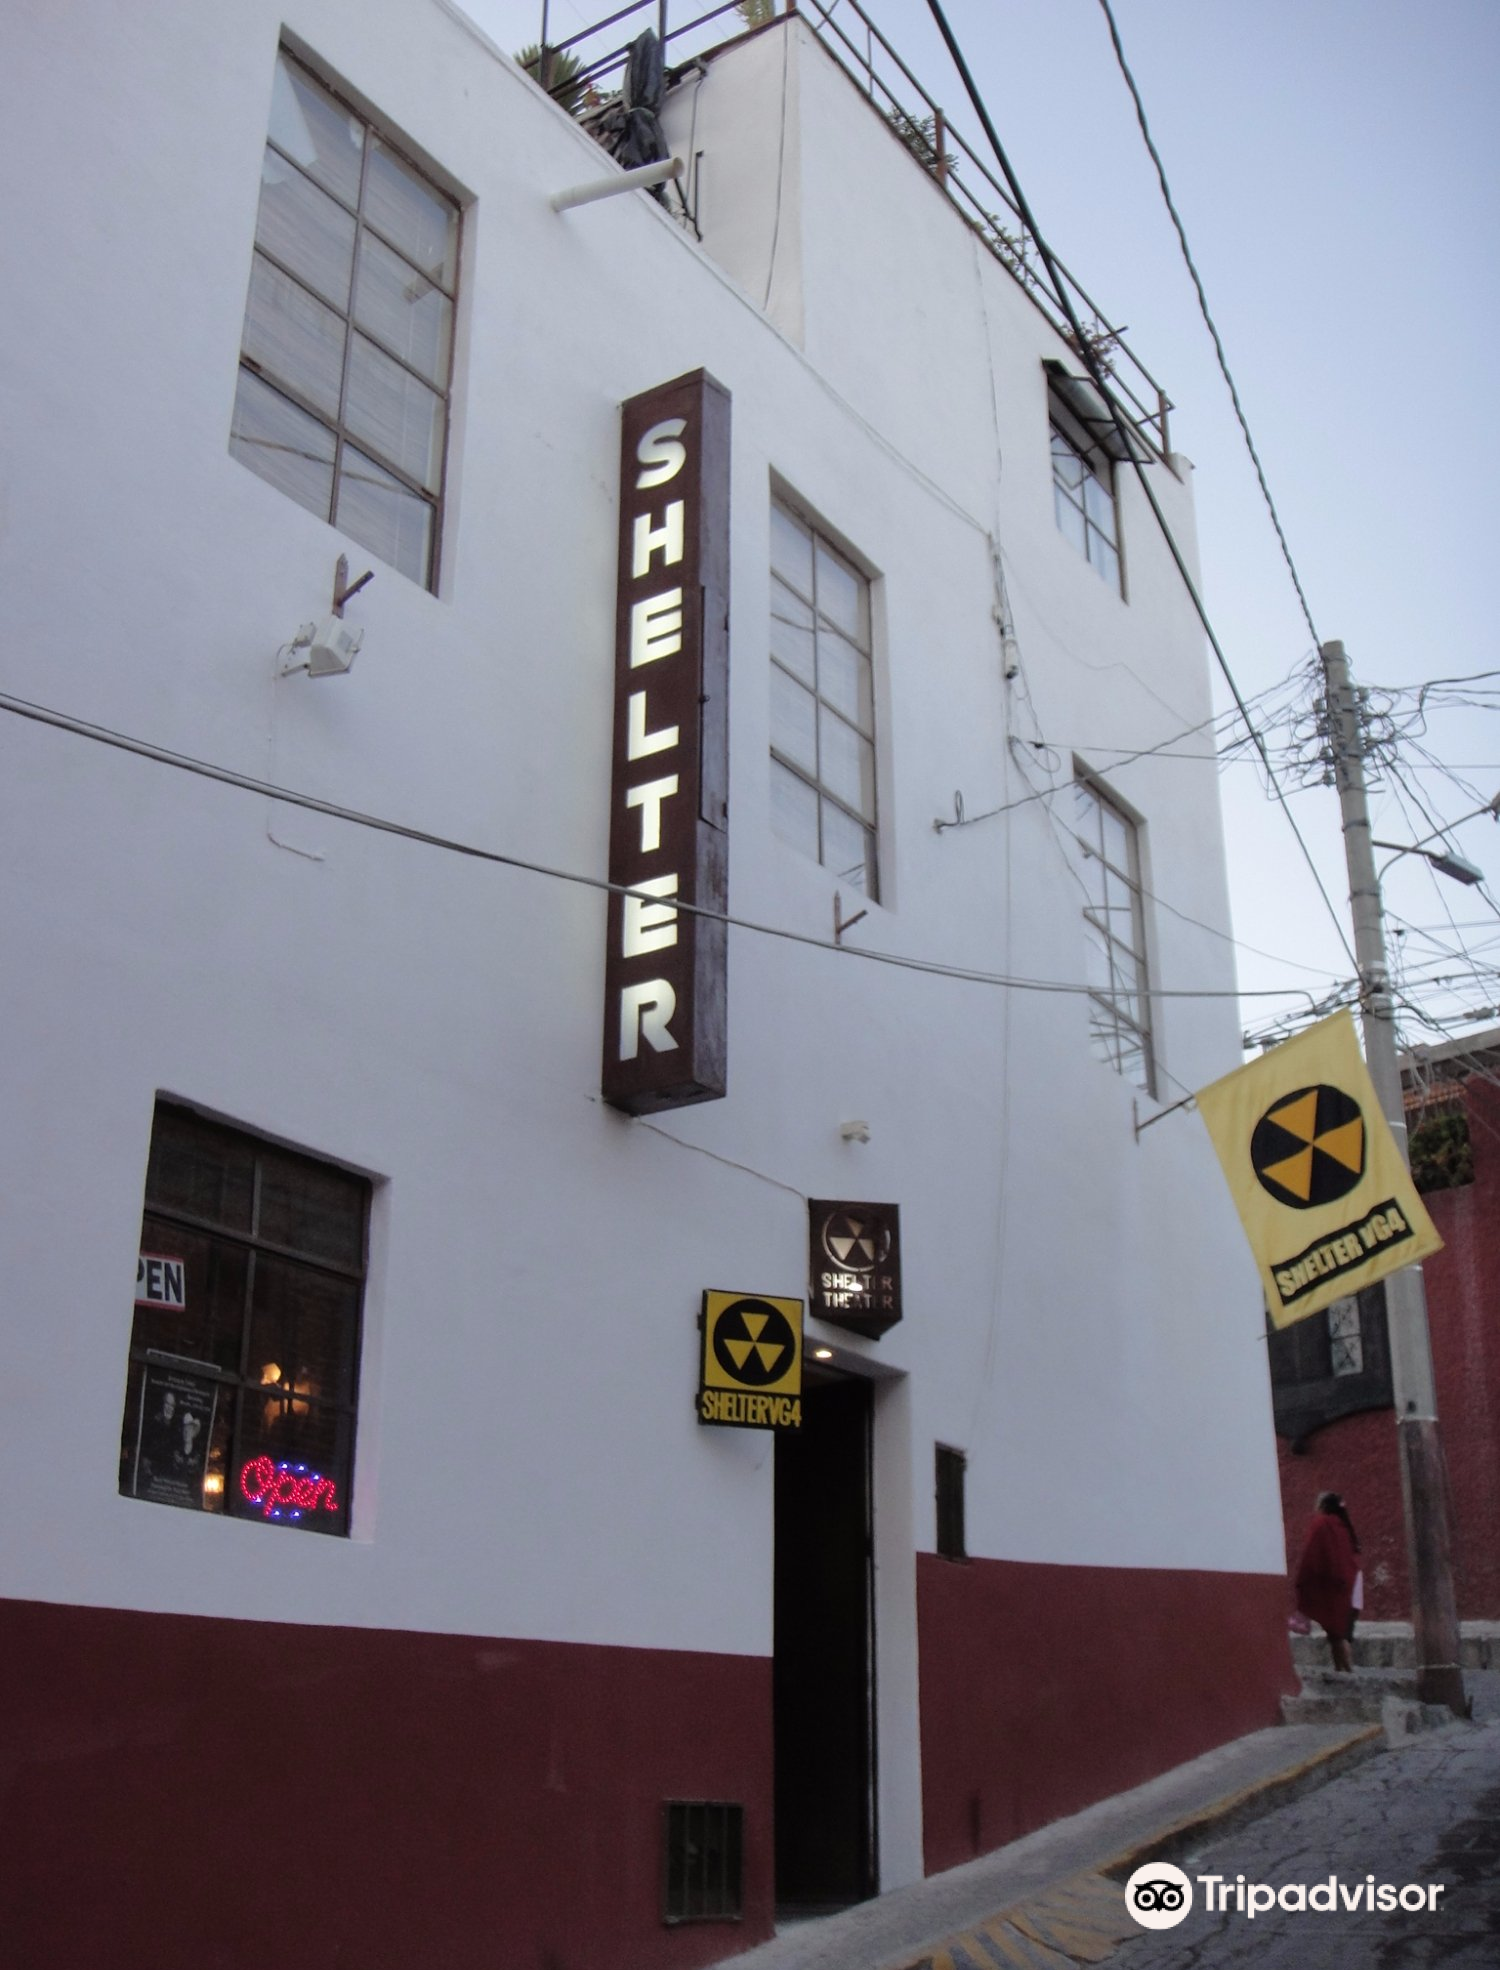 Shelter Theater